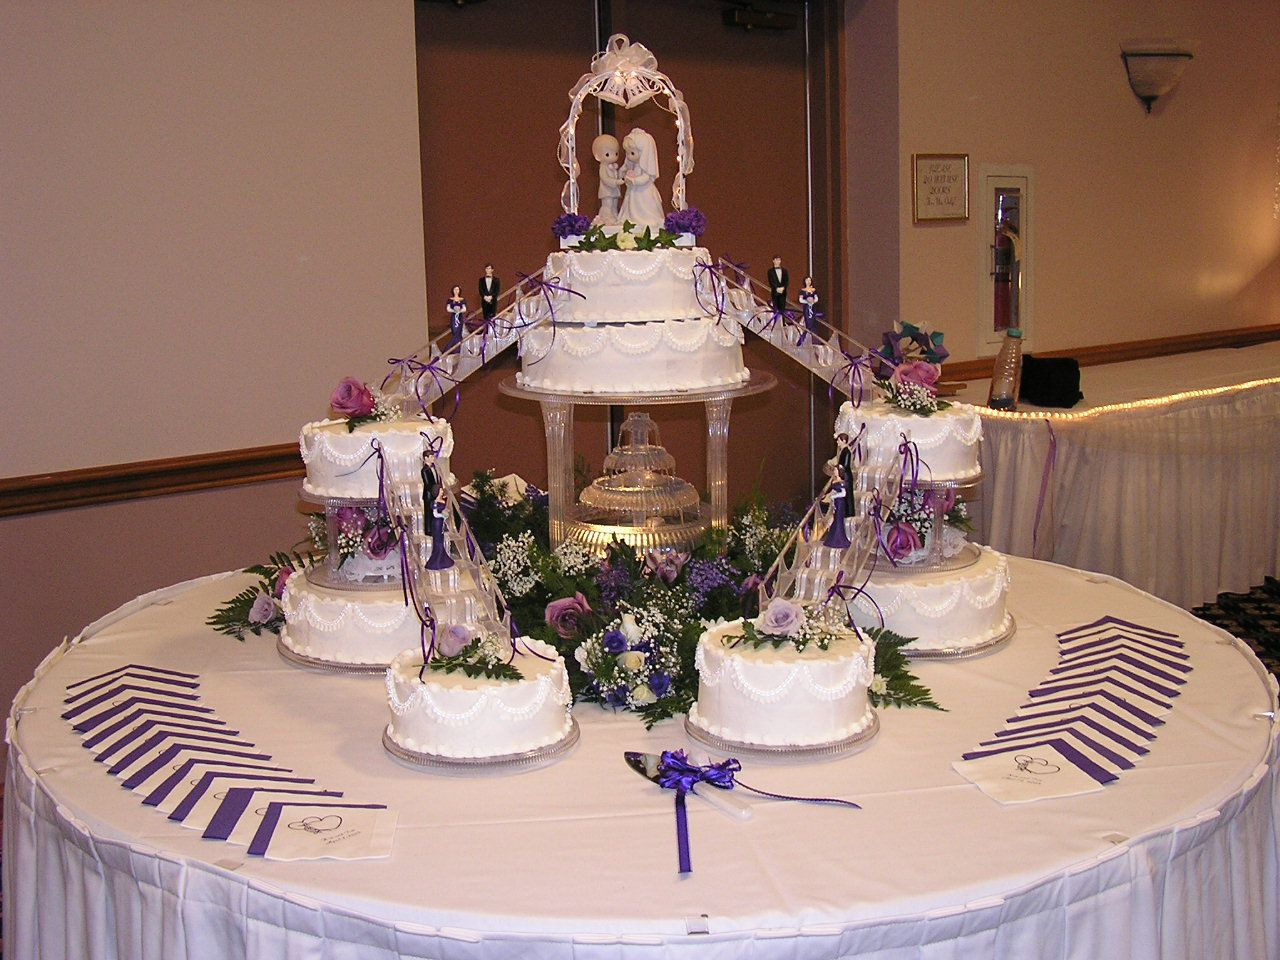 Wedding Cakes With Fountains Huge Cake With Fountain